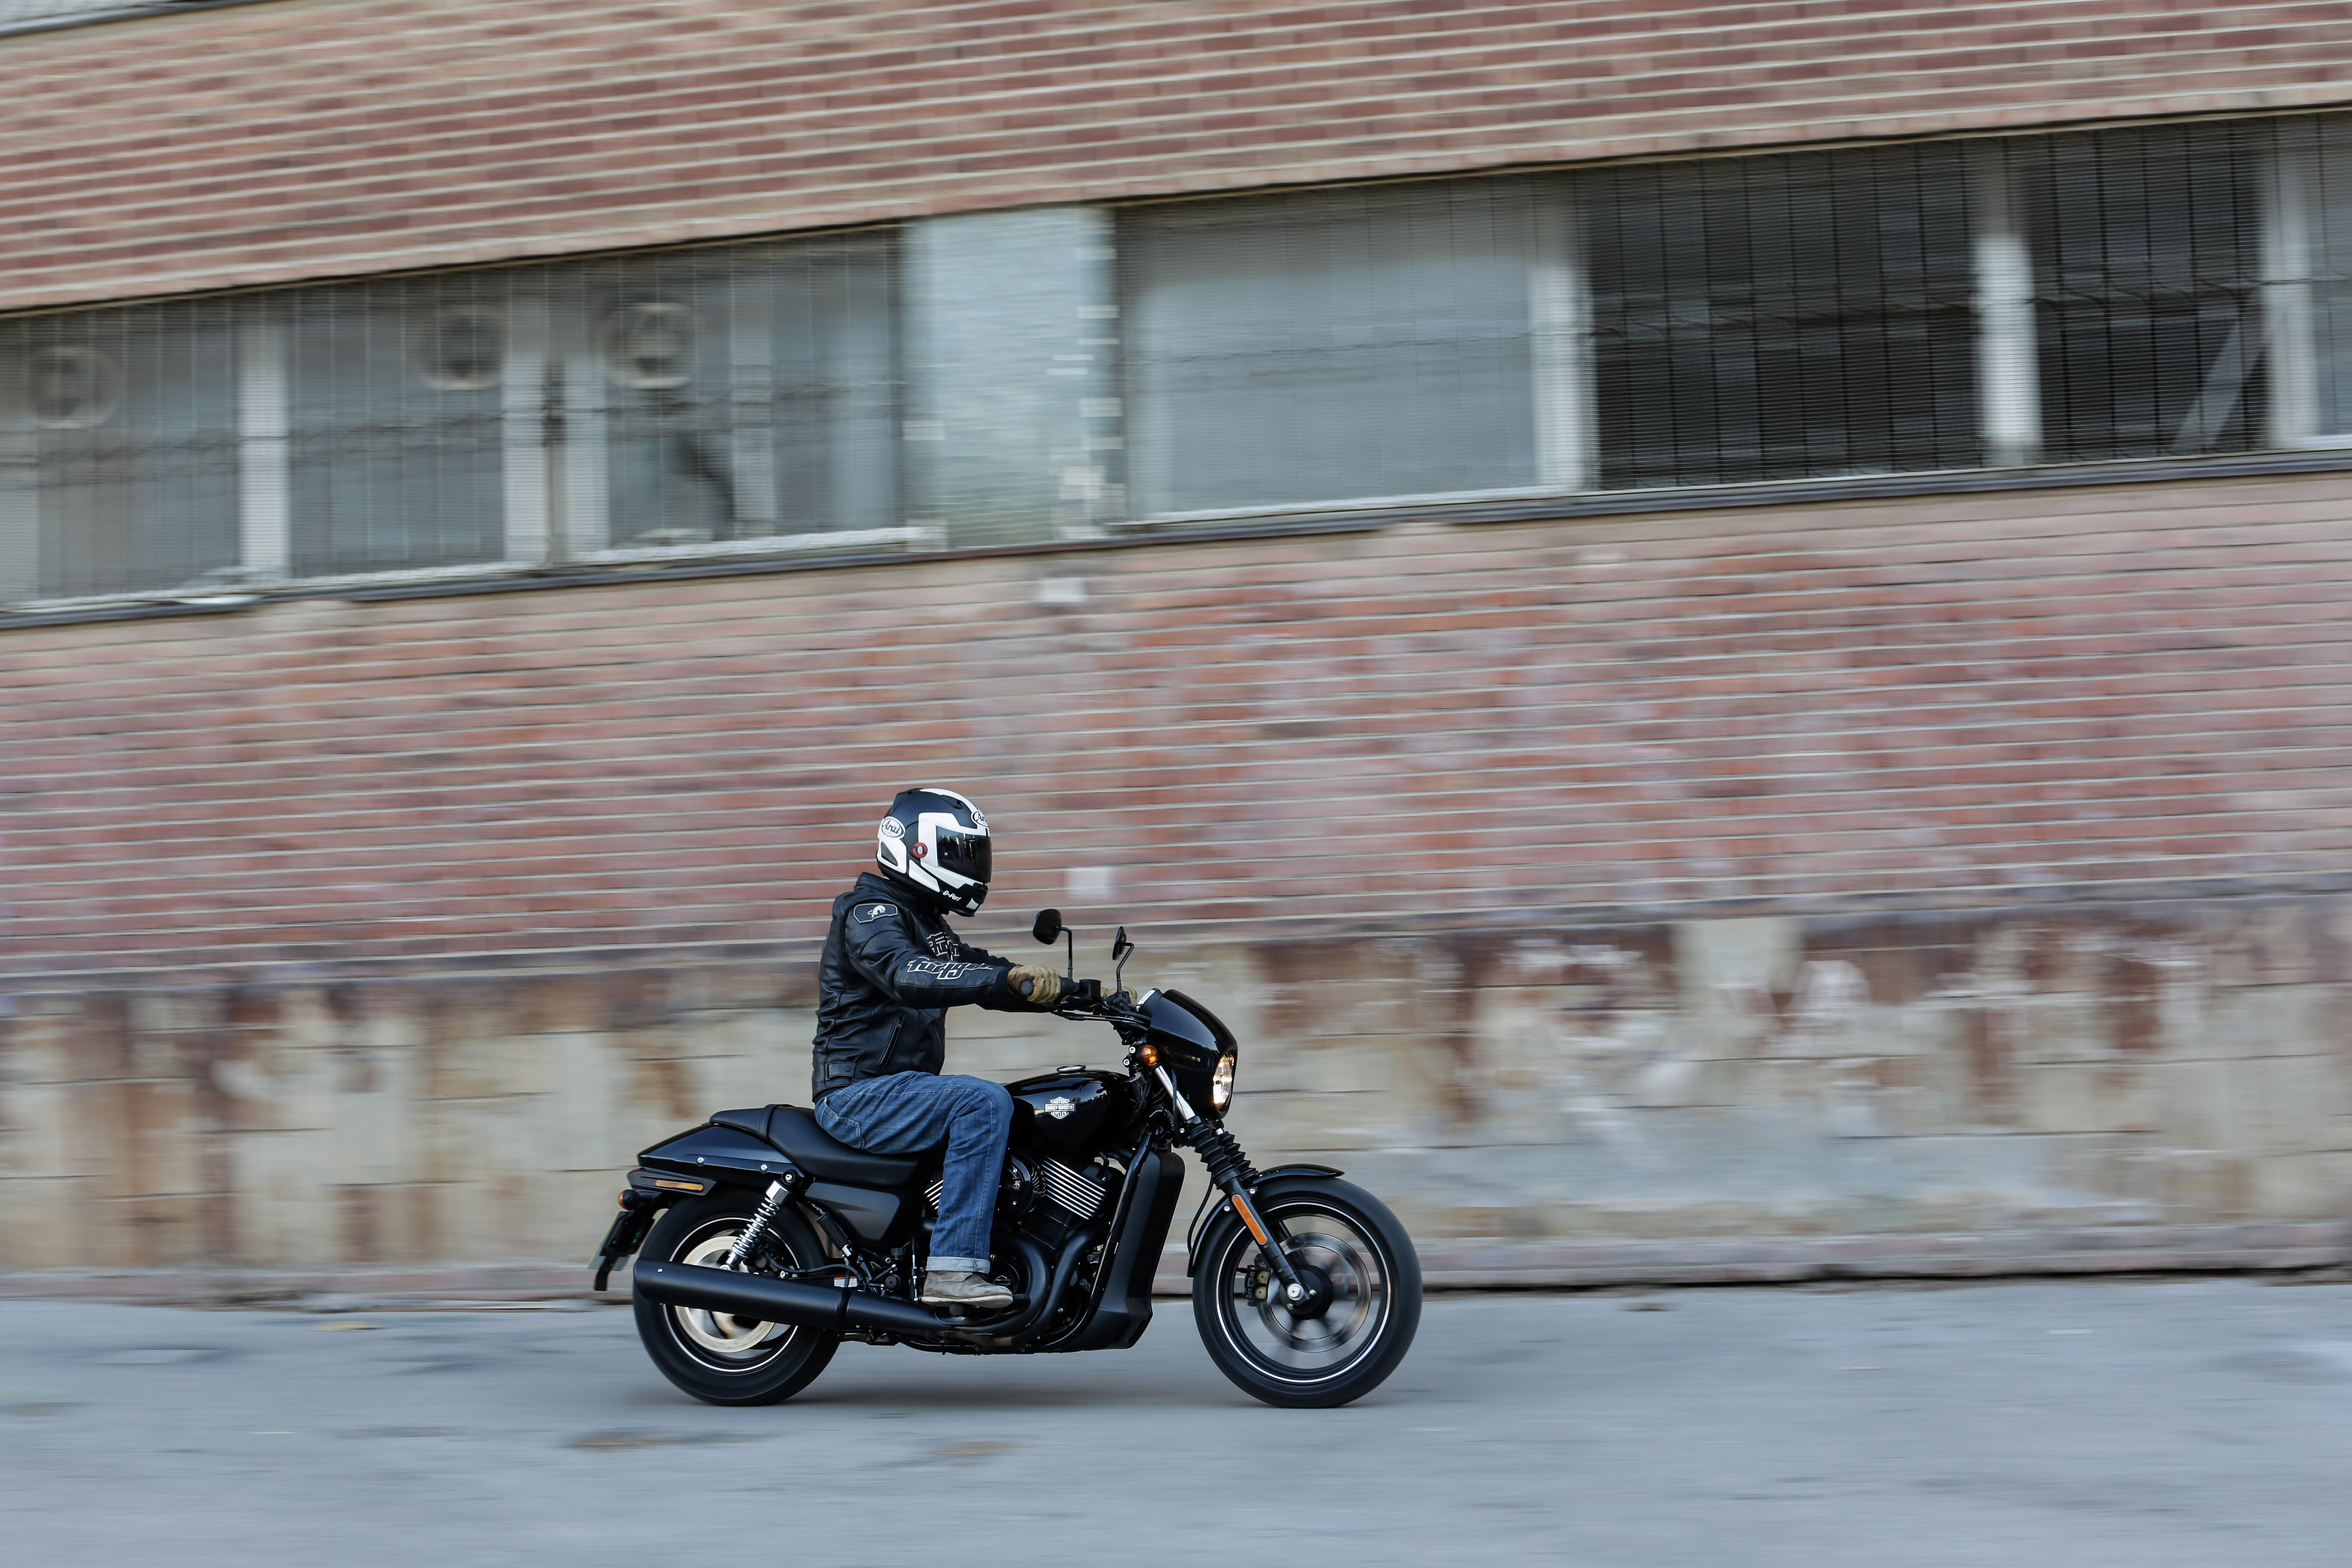 First ride: Harley-Davidson Street 750 review